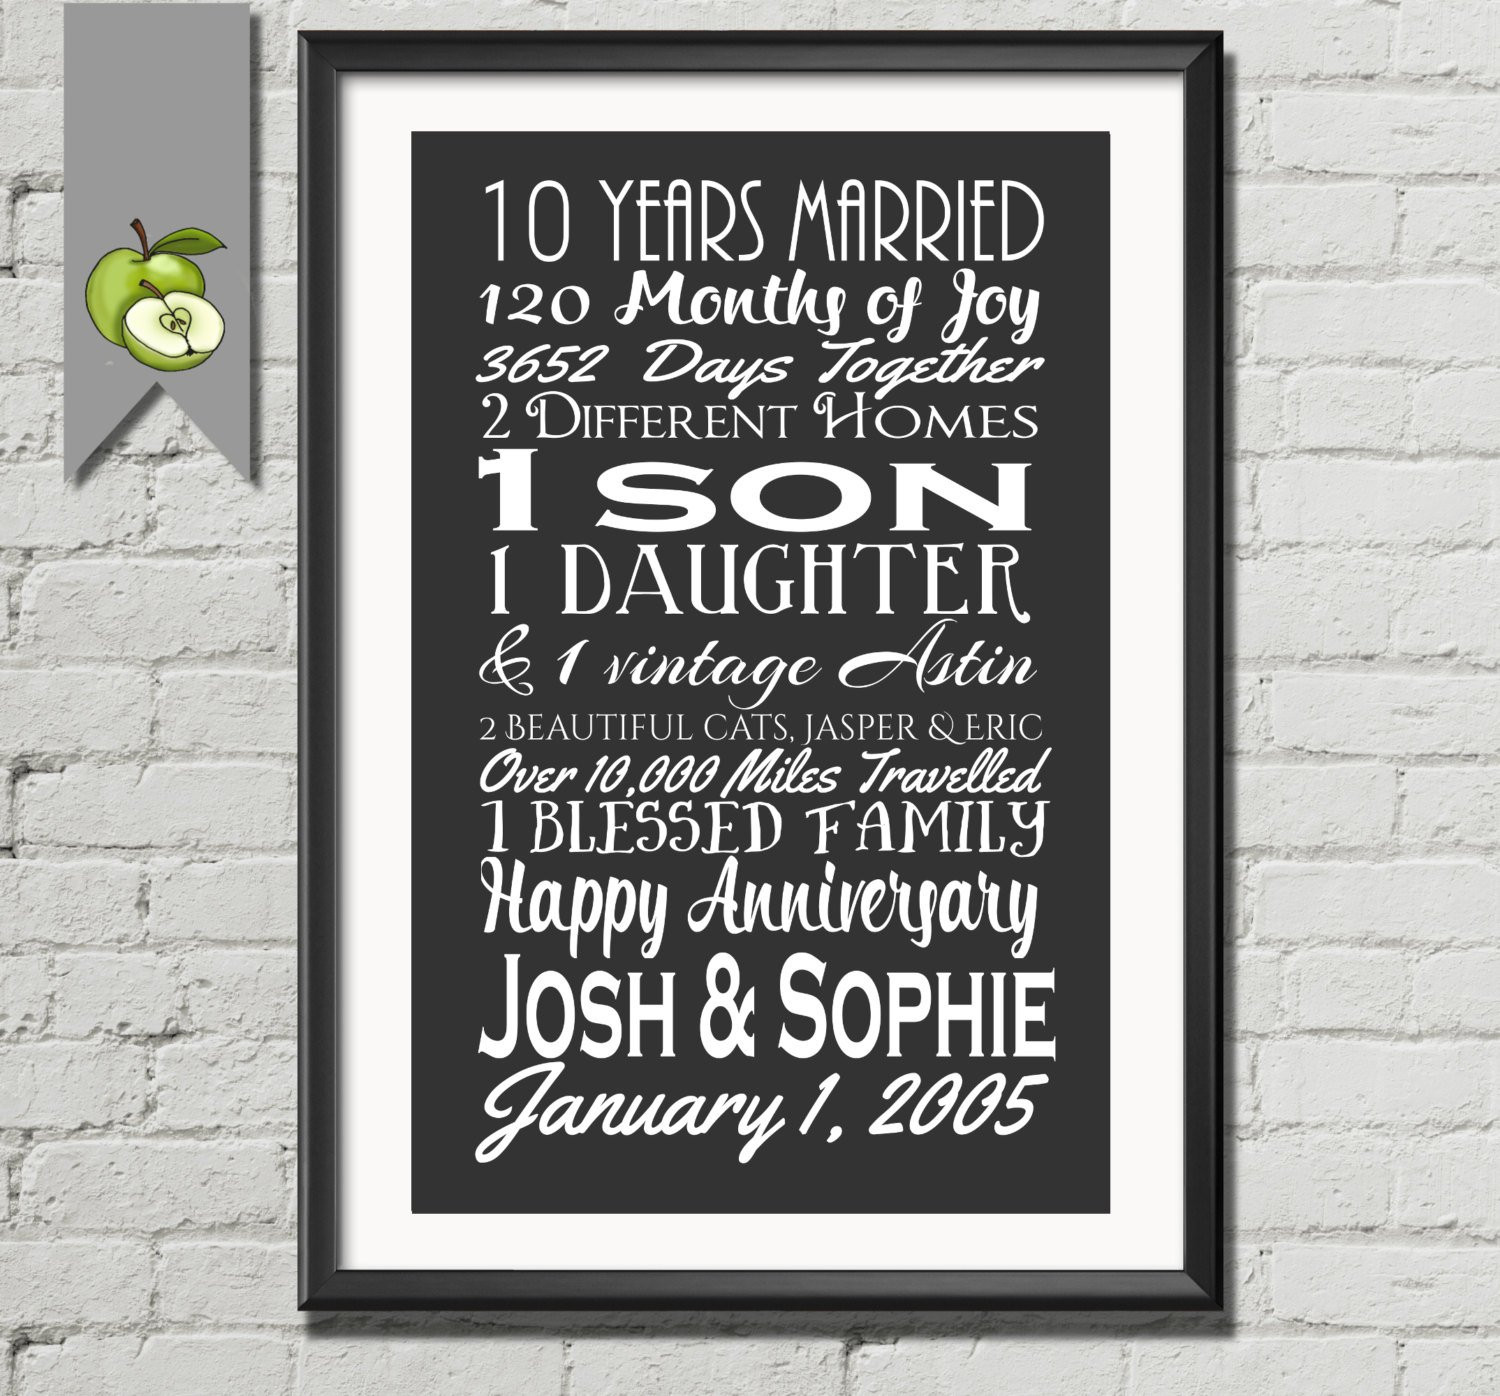 Best ideas about 10 Year Wedding Anniversary Gift Ideas . Save or Pin 10th anniversary t tenth anniversary t wife husband Now.